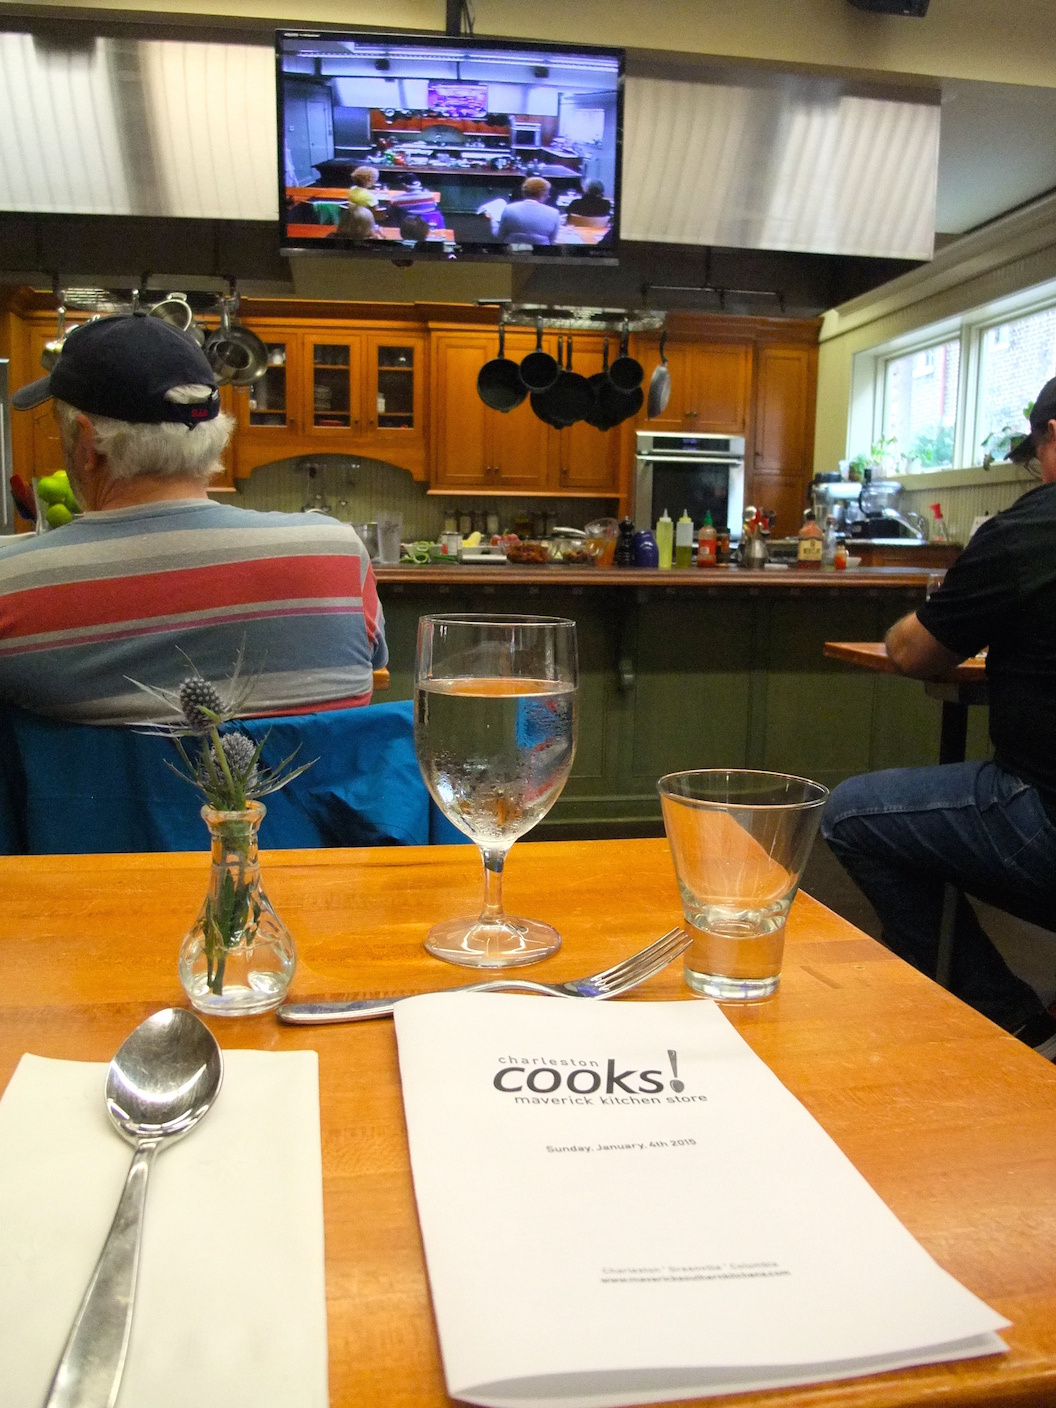 Our class at Charleston Cooks!